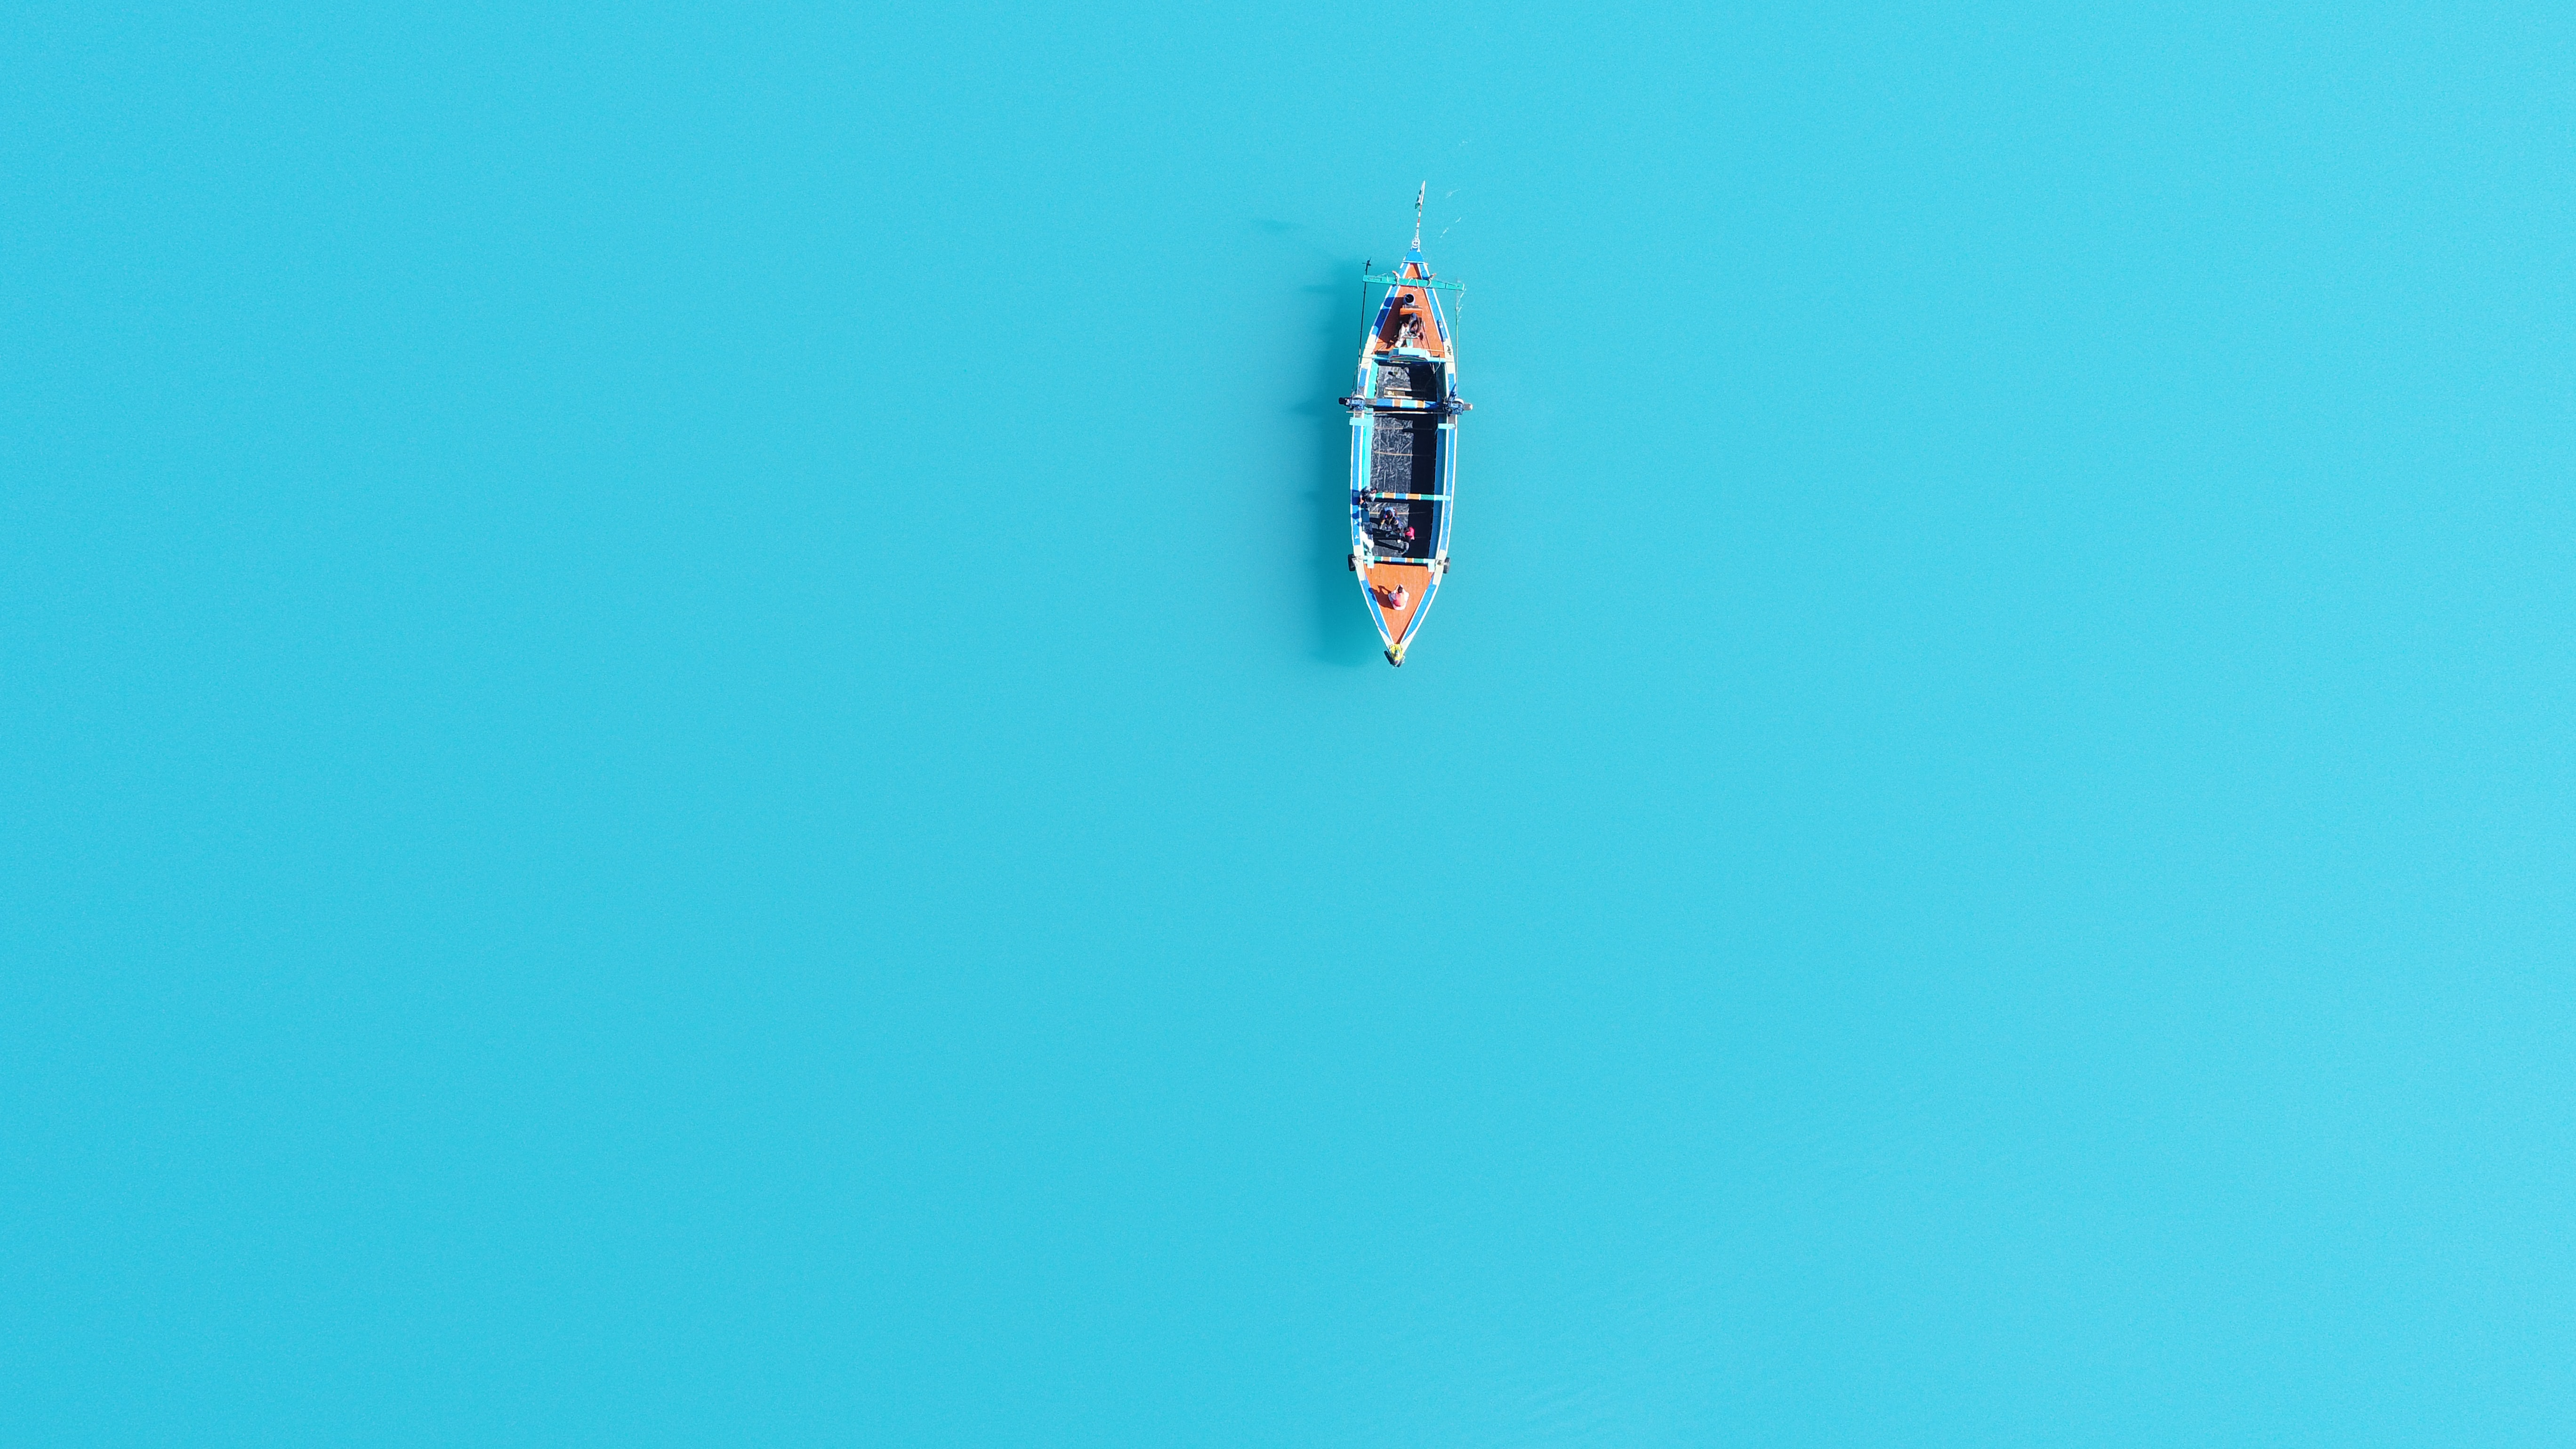 aerial photography of brown and blue canoe on body of water